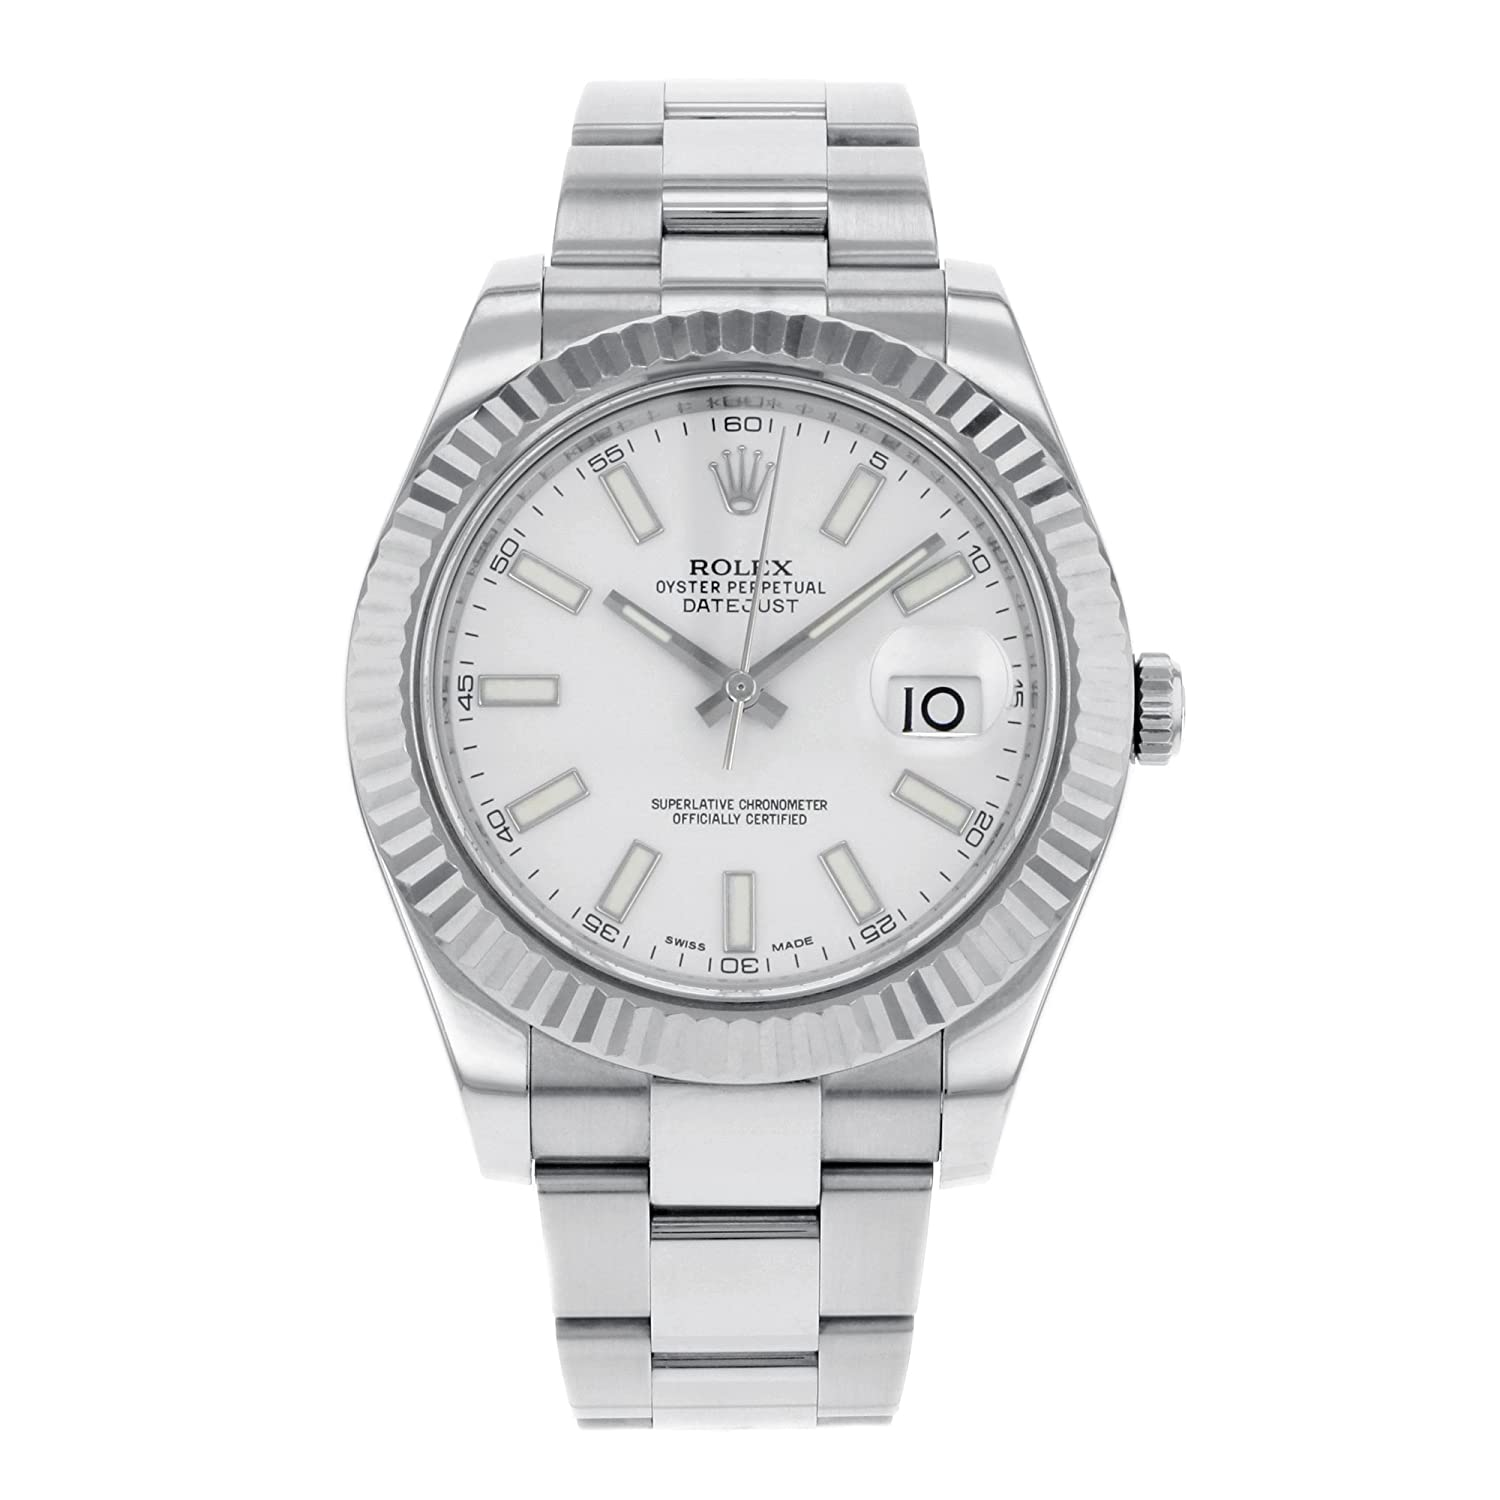 ii rhodium product wristshot gold watches rolex datejust white bezel with dial arabic fluted